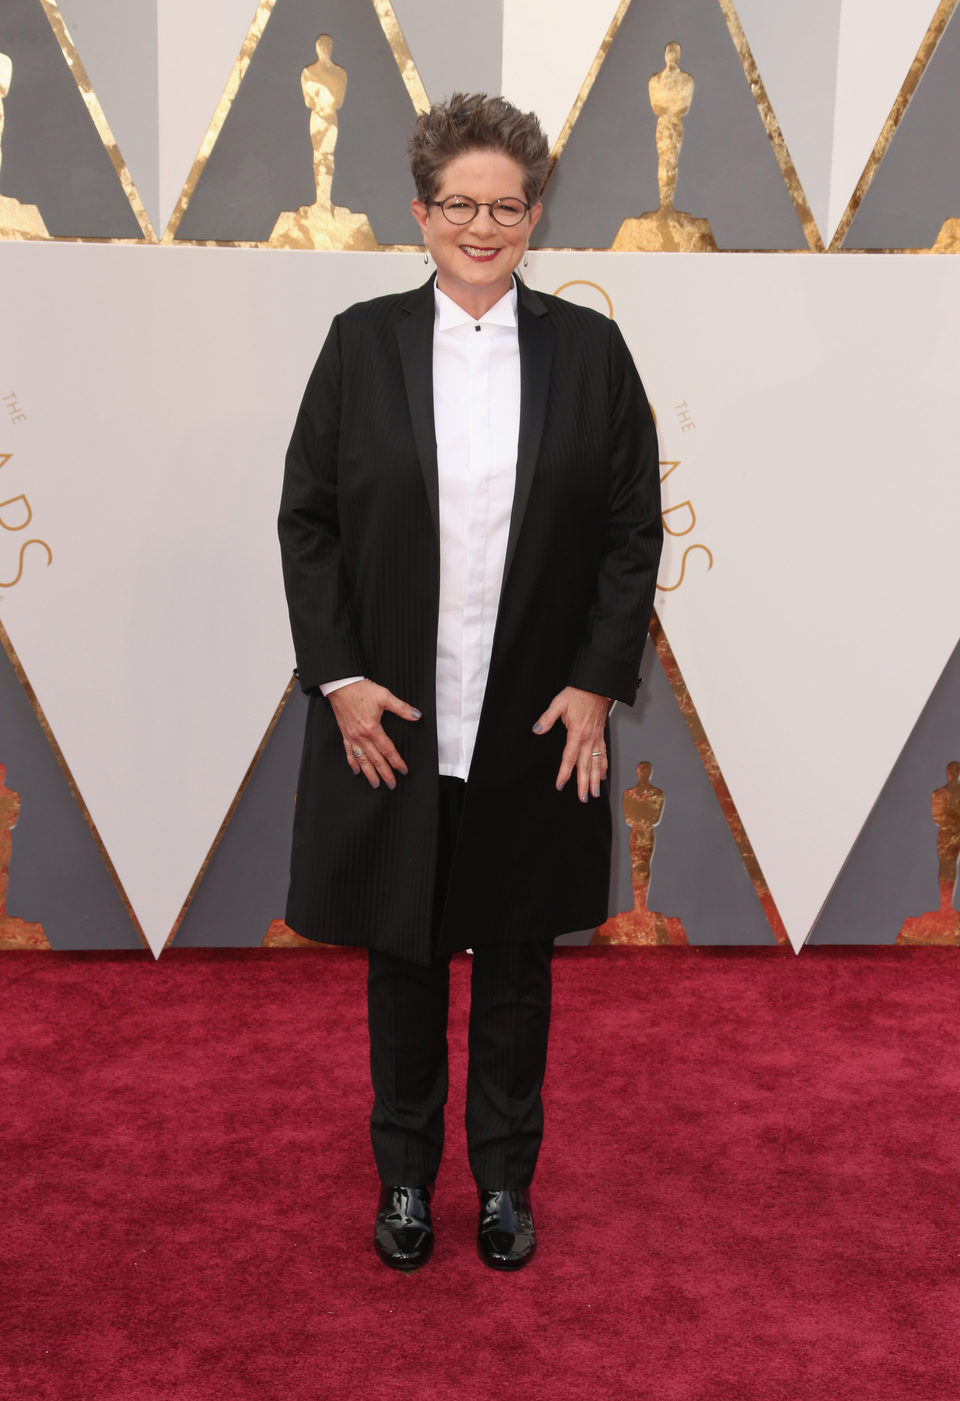 Phyllis Nagy at the Oscars 2016 red carpet